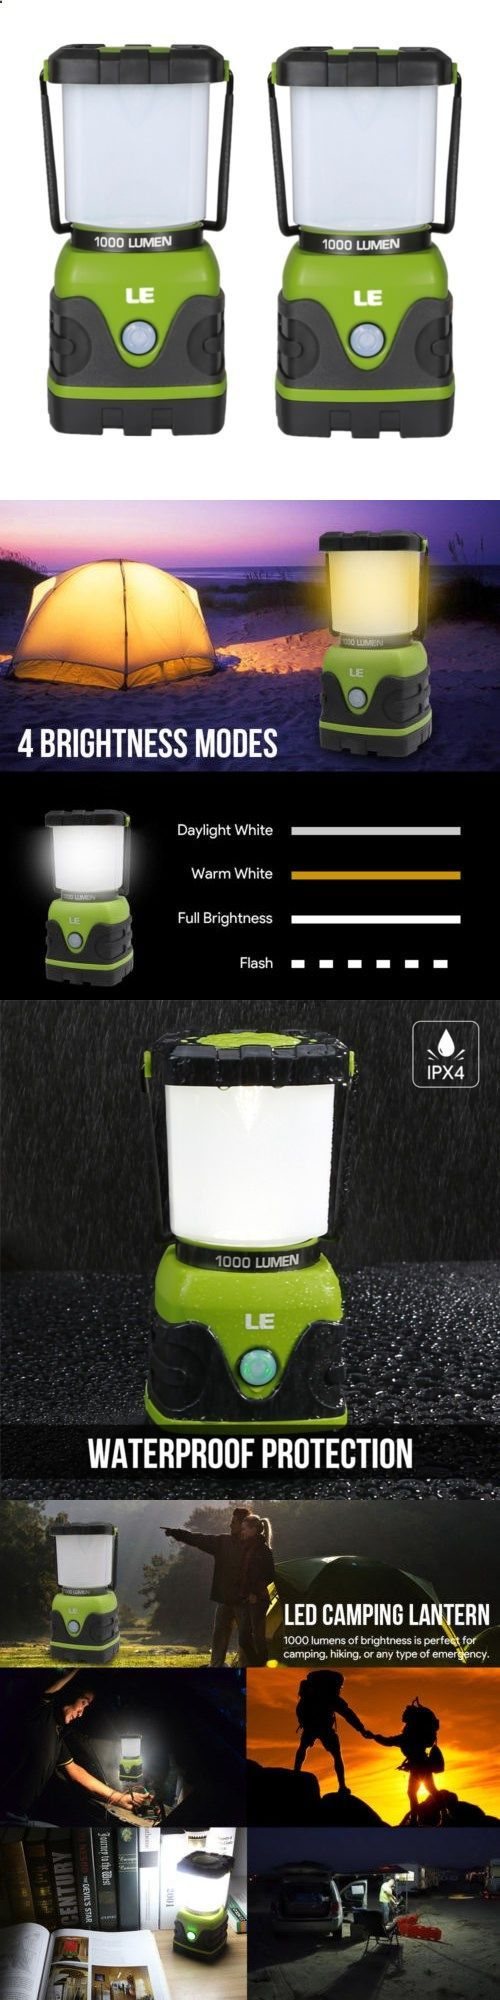 Lanterns 168867: 2Pcs Portable Led Camping Lantern For Home Garden Outdoor Hiking Emergency -> BUY IT NOW ONLY: $39.98 on eBay! #CampingLantern